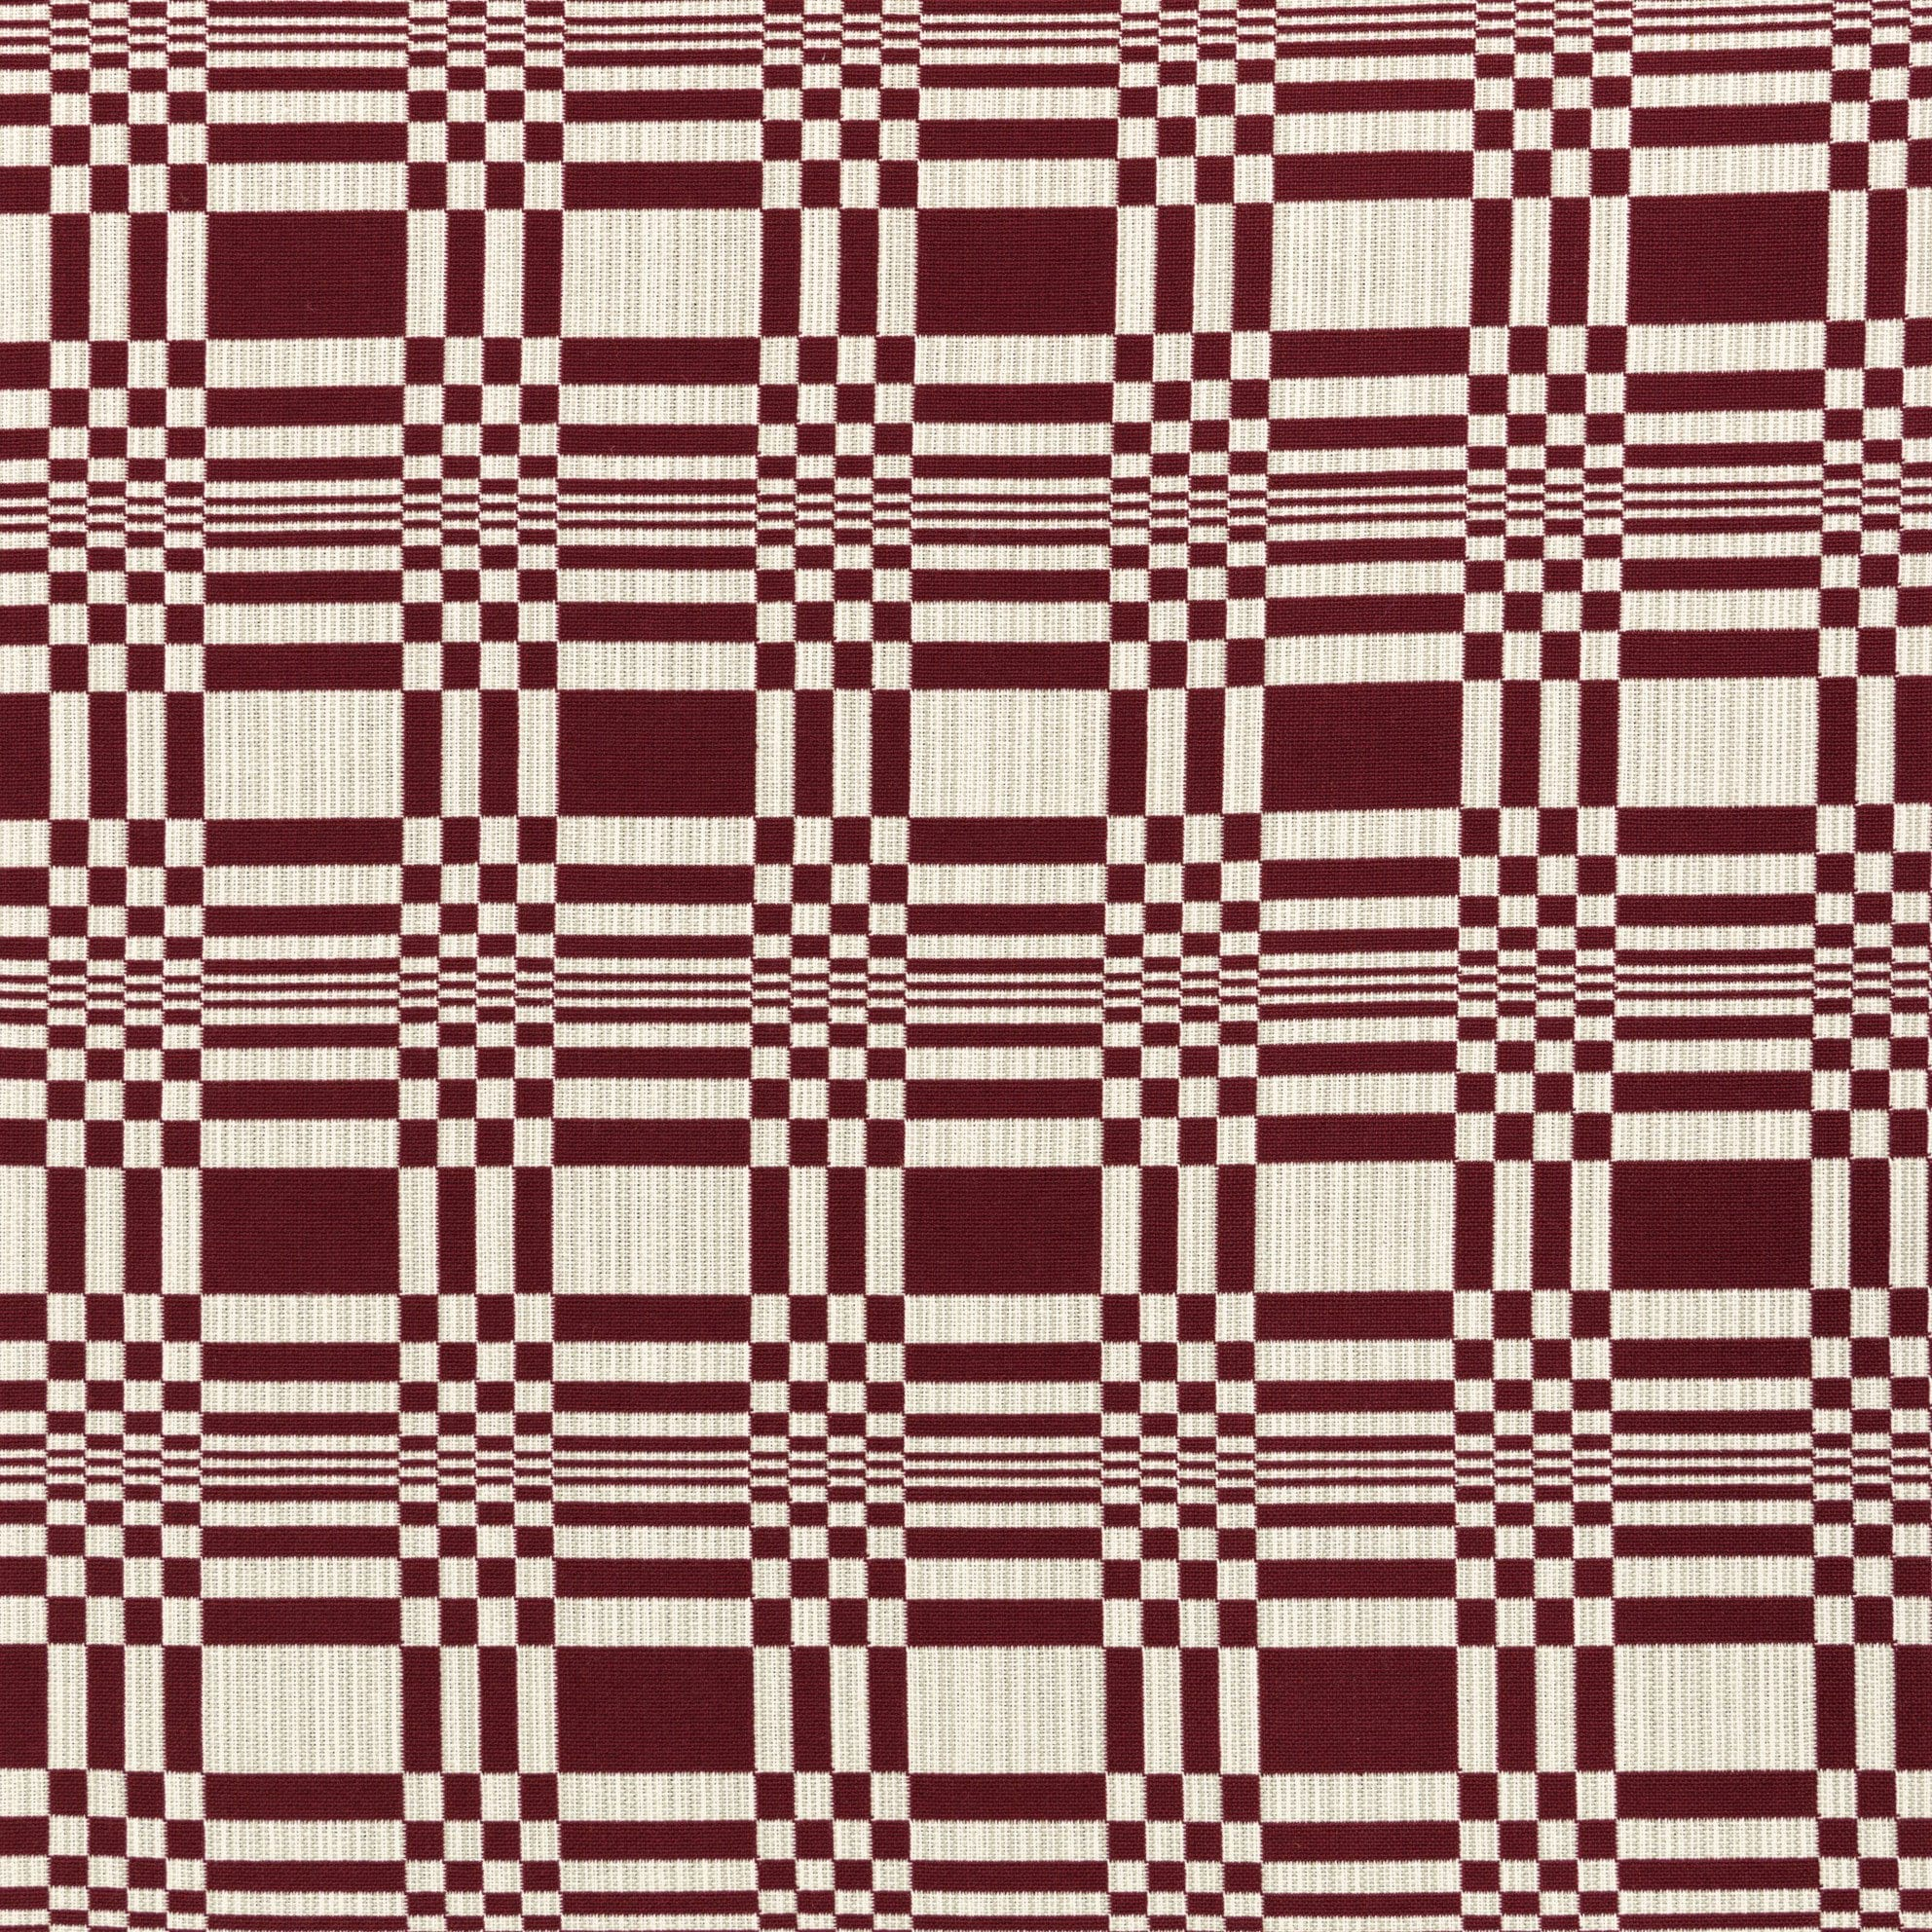 Cotton Fabric Doris - Bordeaux | Nicholas Engert Interiors